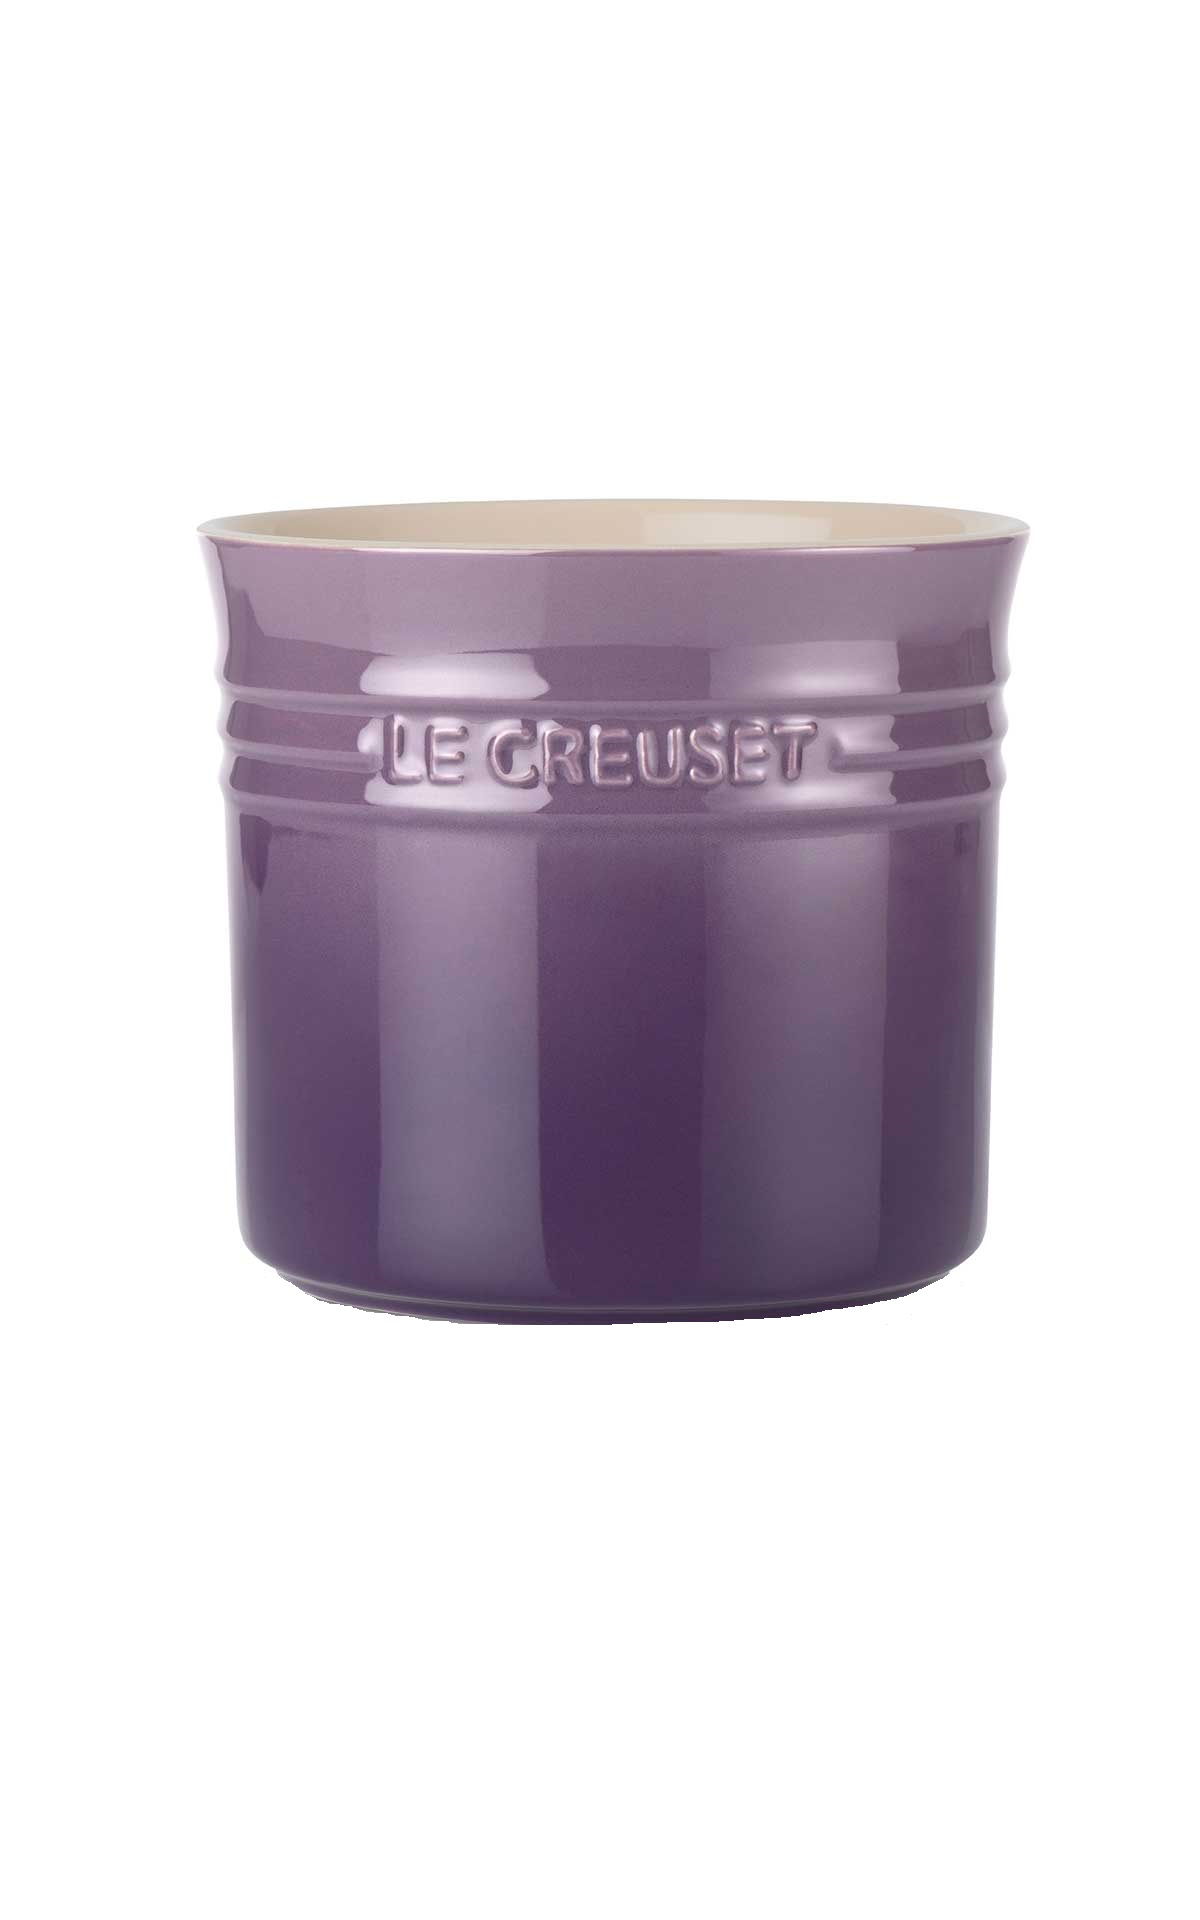 Purple utensil pot from Le Creuset